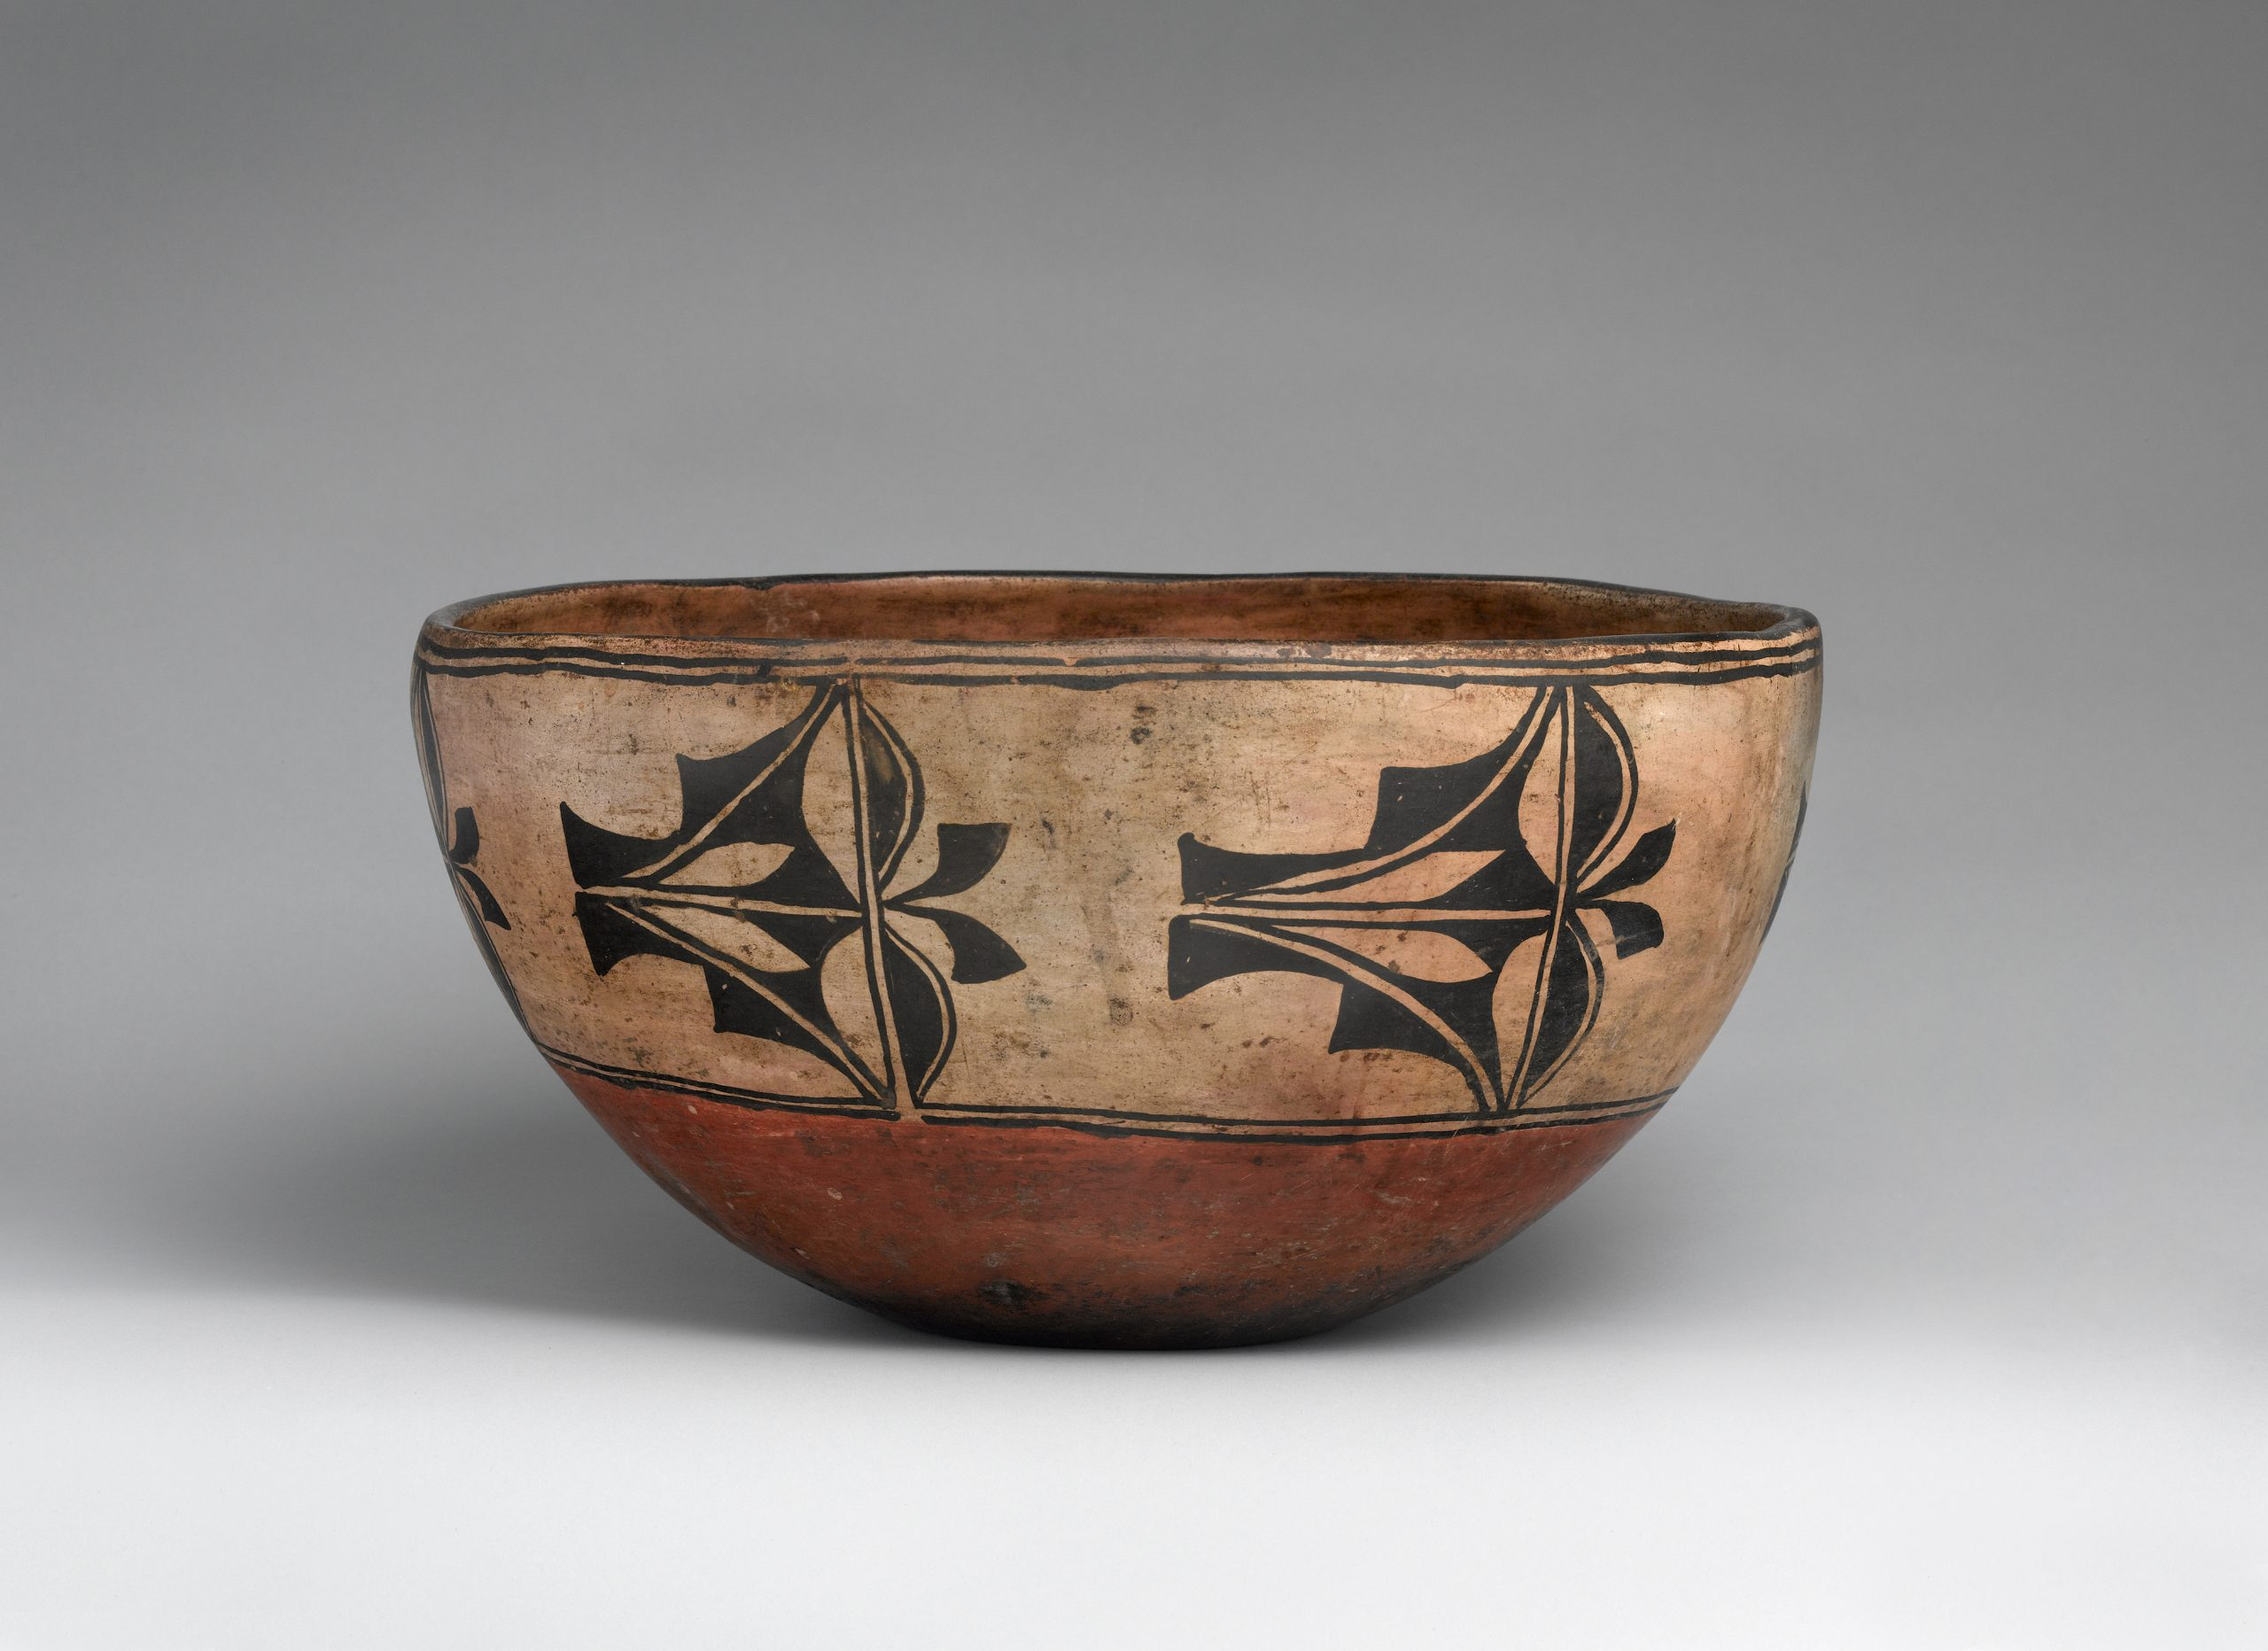 Clay pottery bowl with red rim and circular decorative shapes.